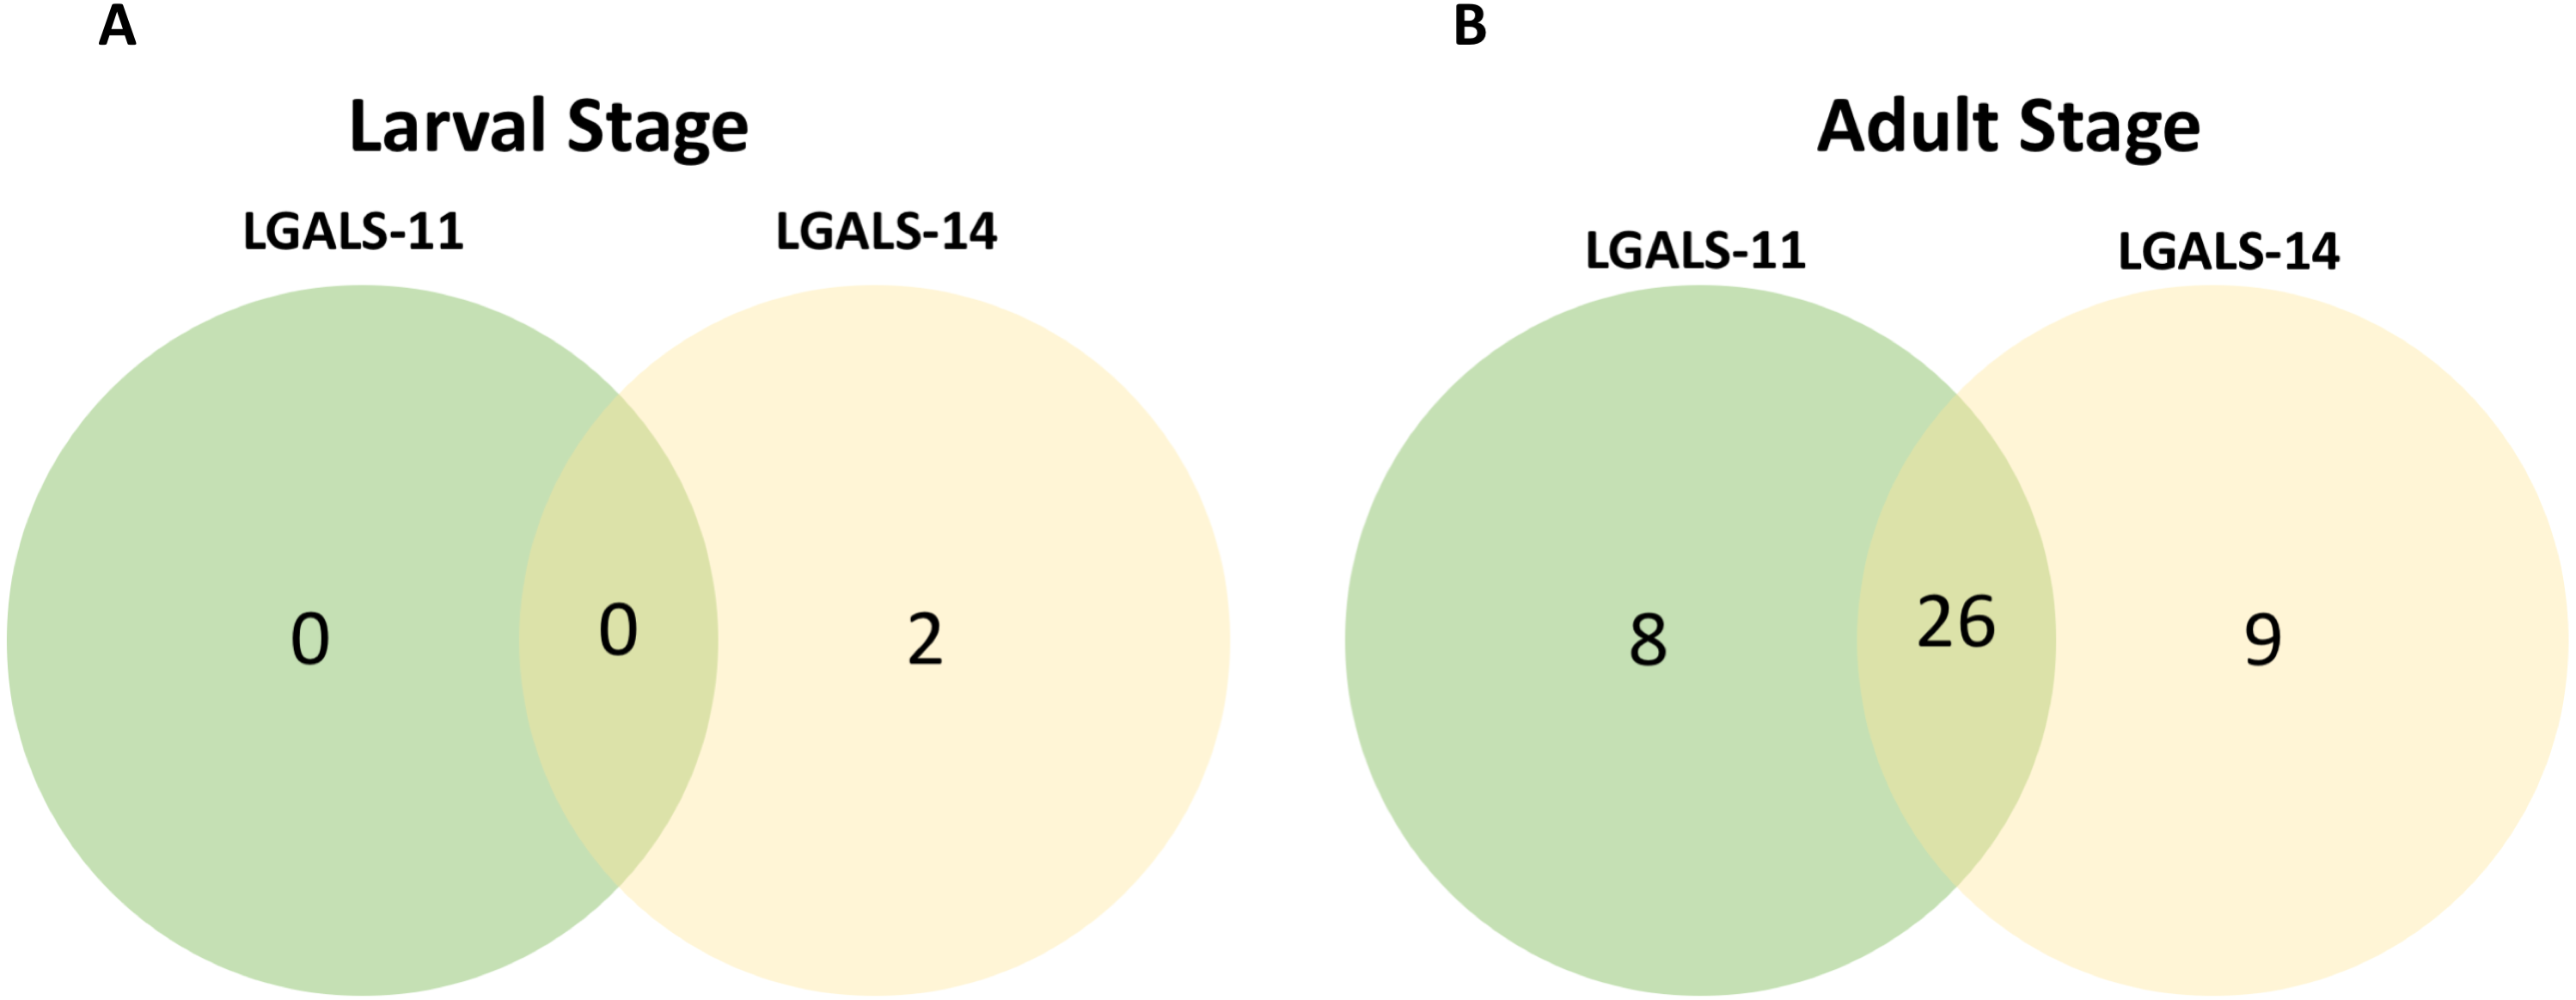 Proteomic identification of galectin-11 and 14 ligands from